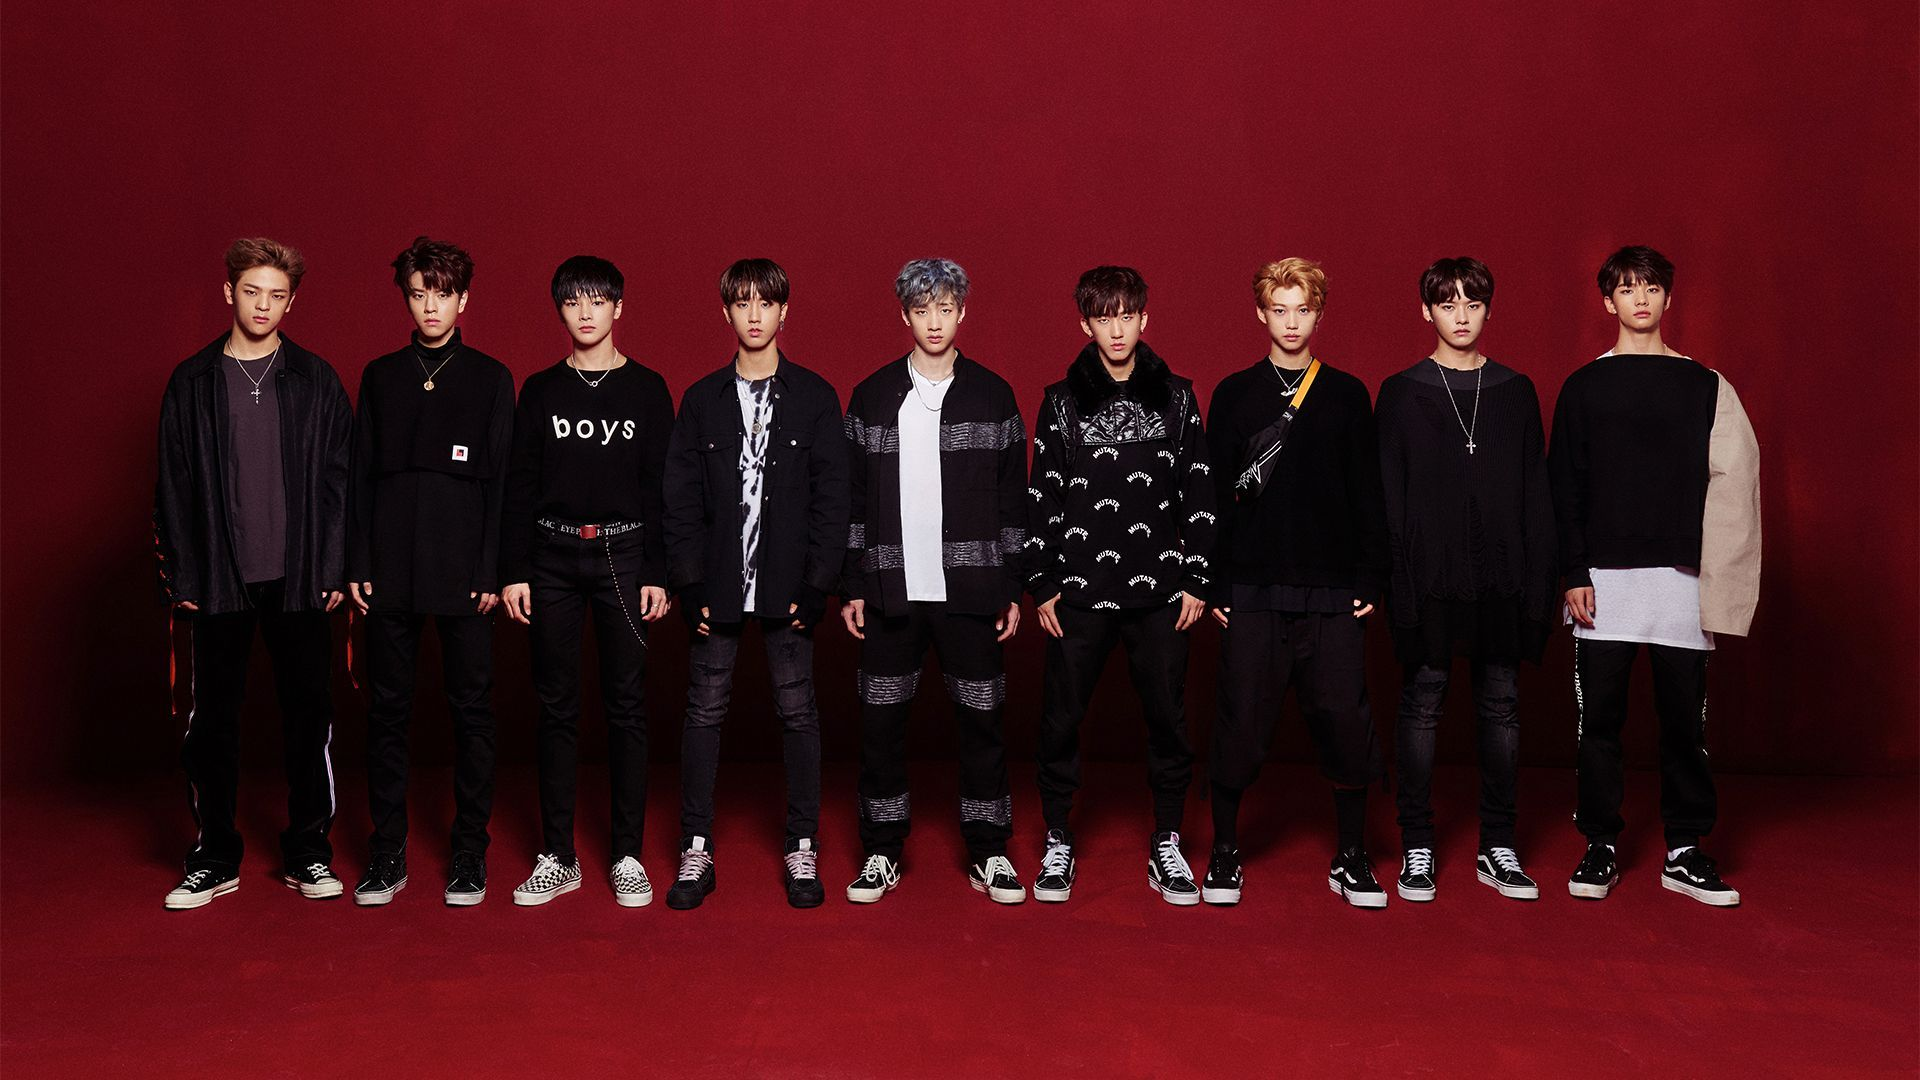 Stray Kids Wallpaper Hd Image Search Results Kids Wallpaper Hd Images Kids Photos